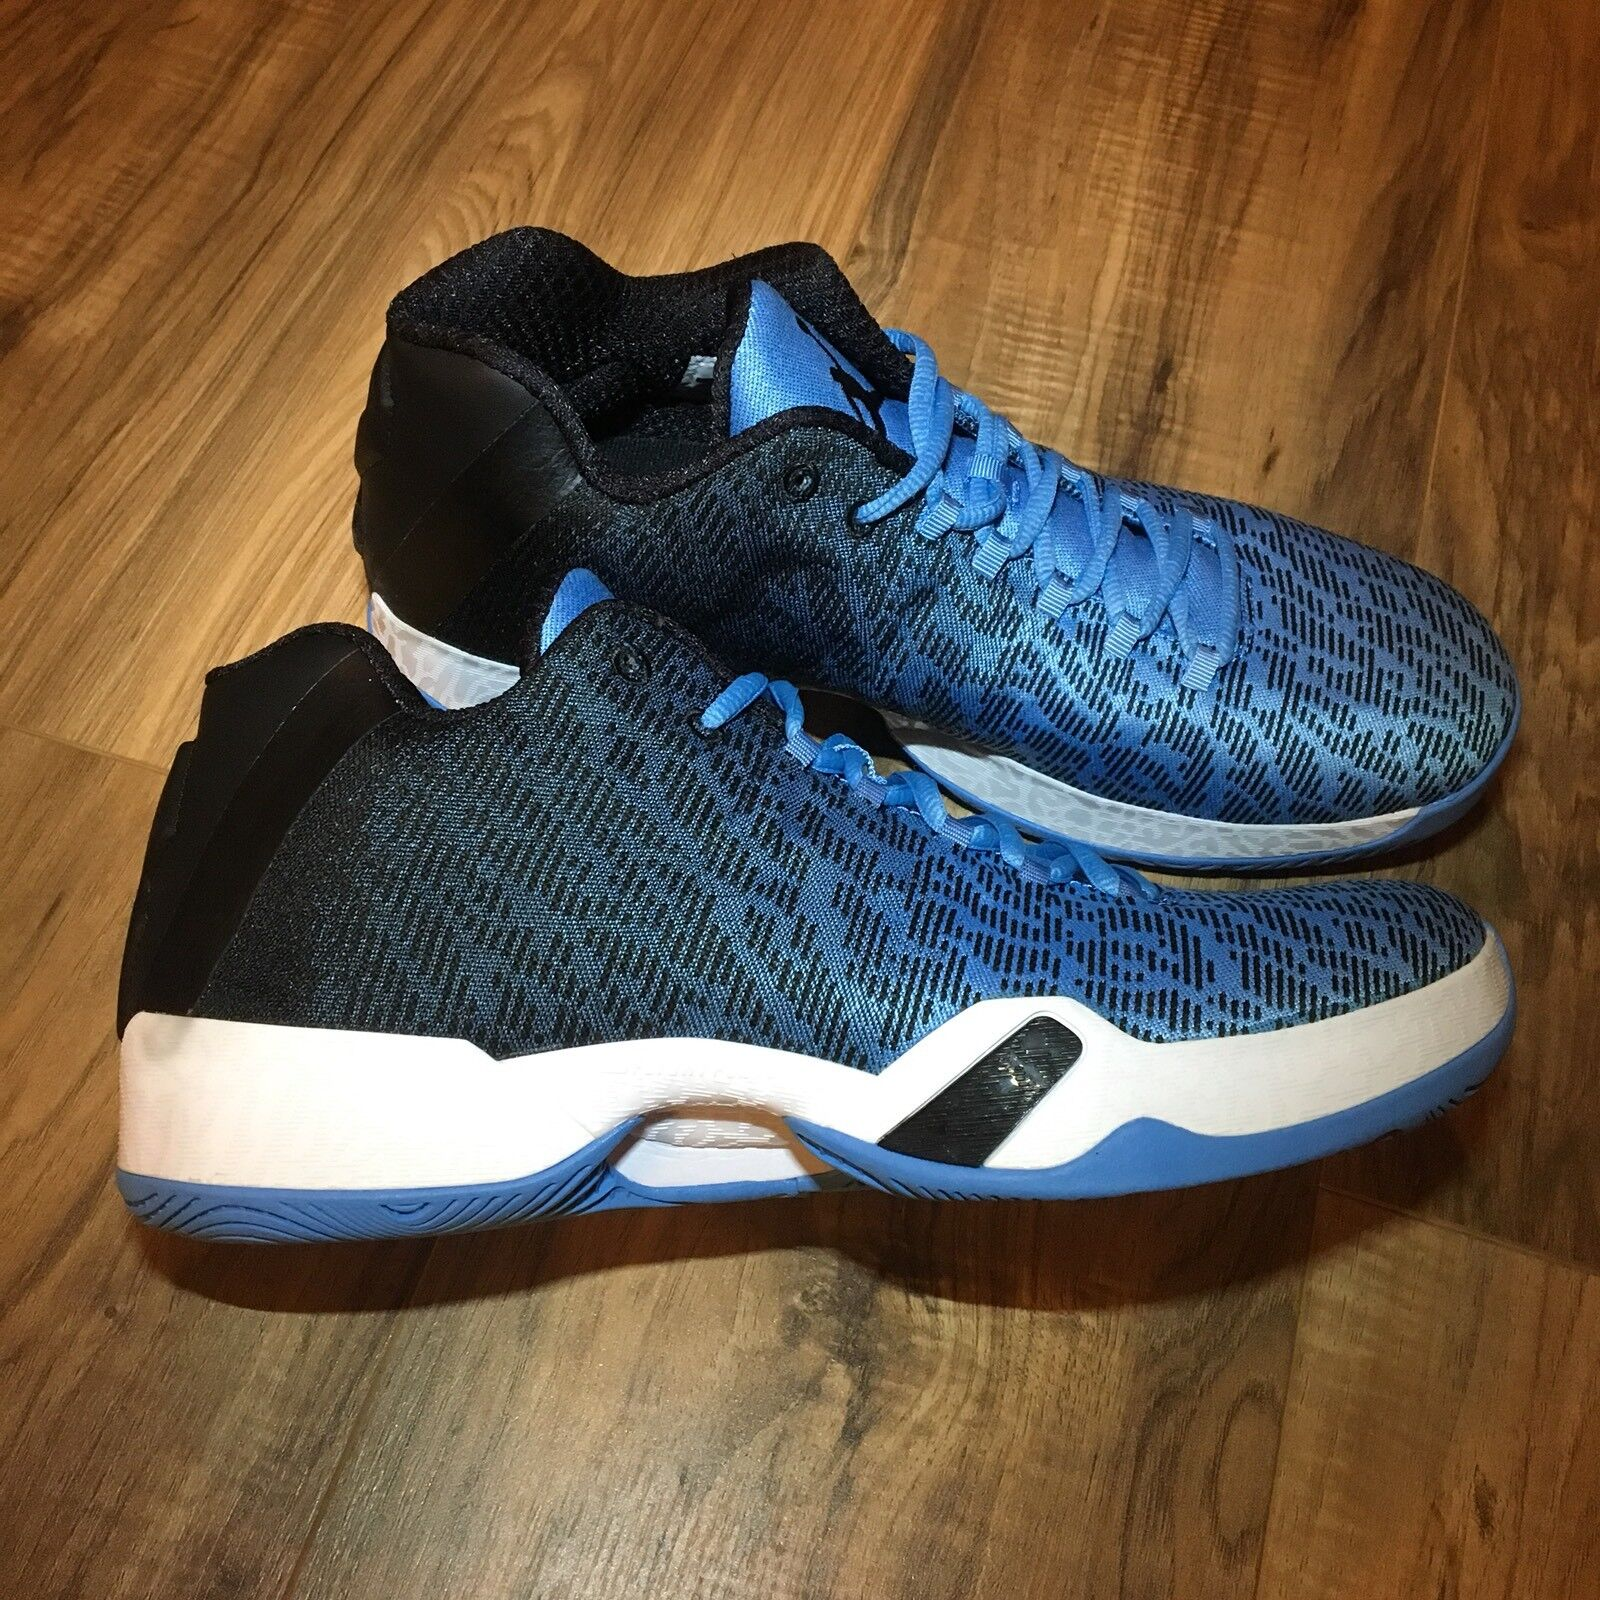 Air Jordan XX9 Low Basketball Shoes Univ Blue UNC 828051 401 Men's Comfortable